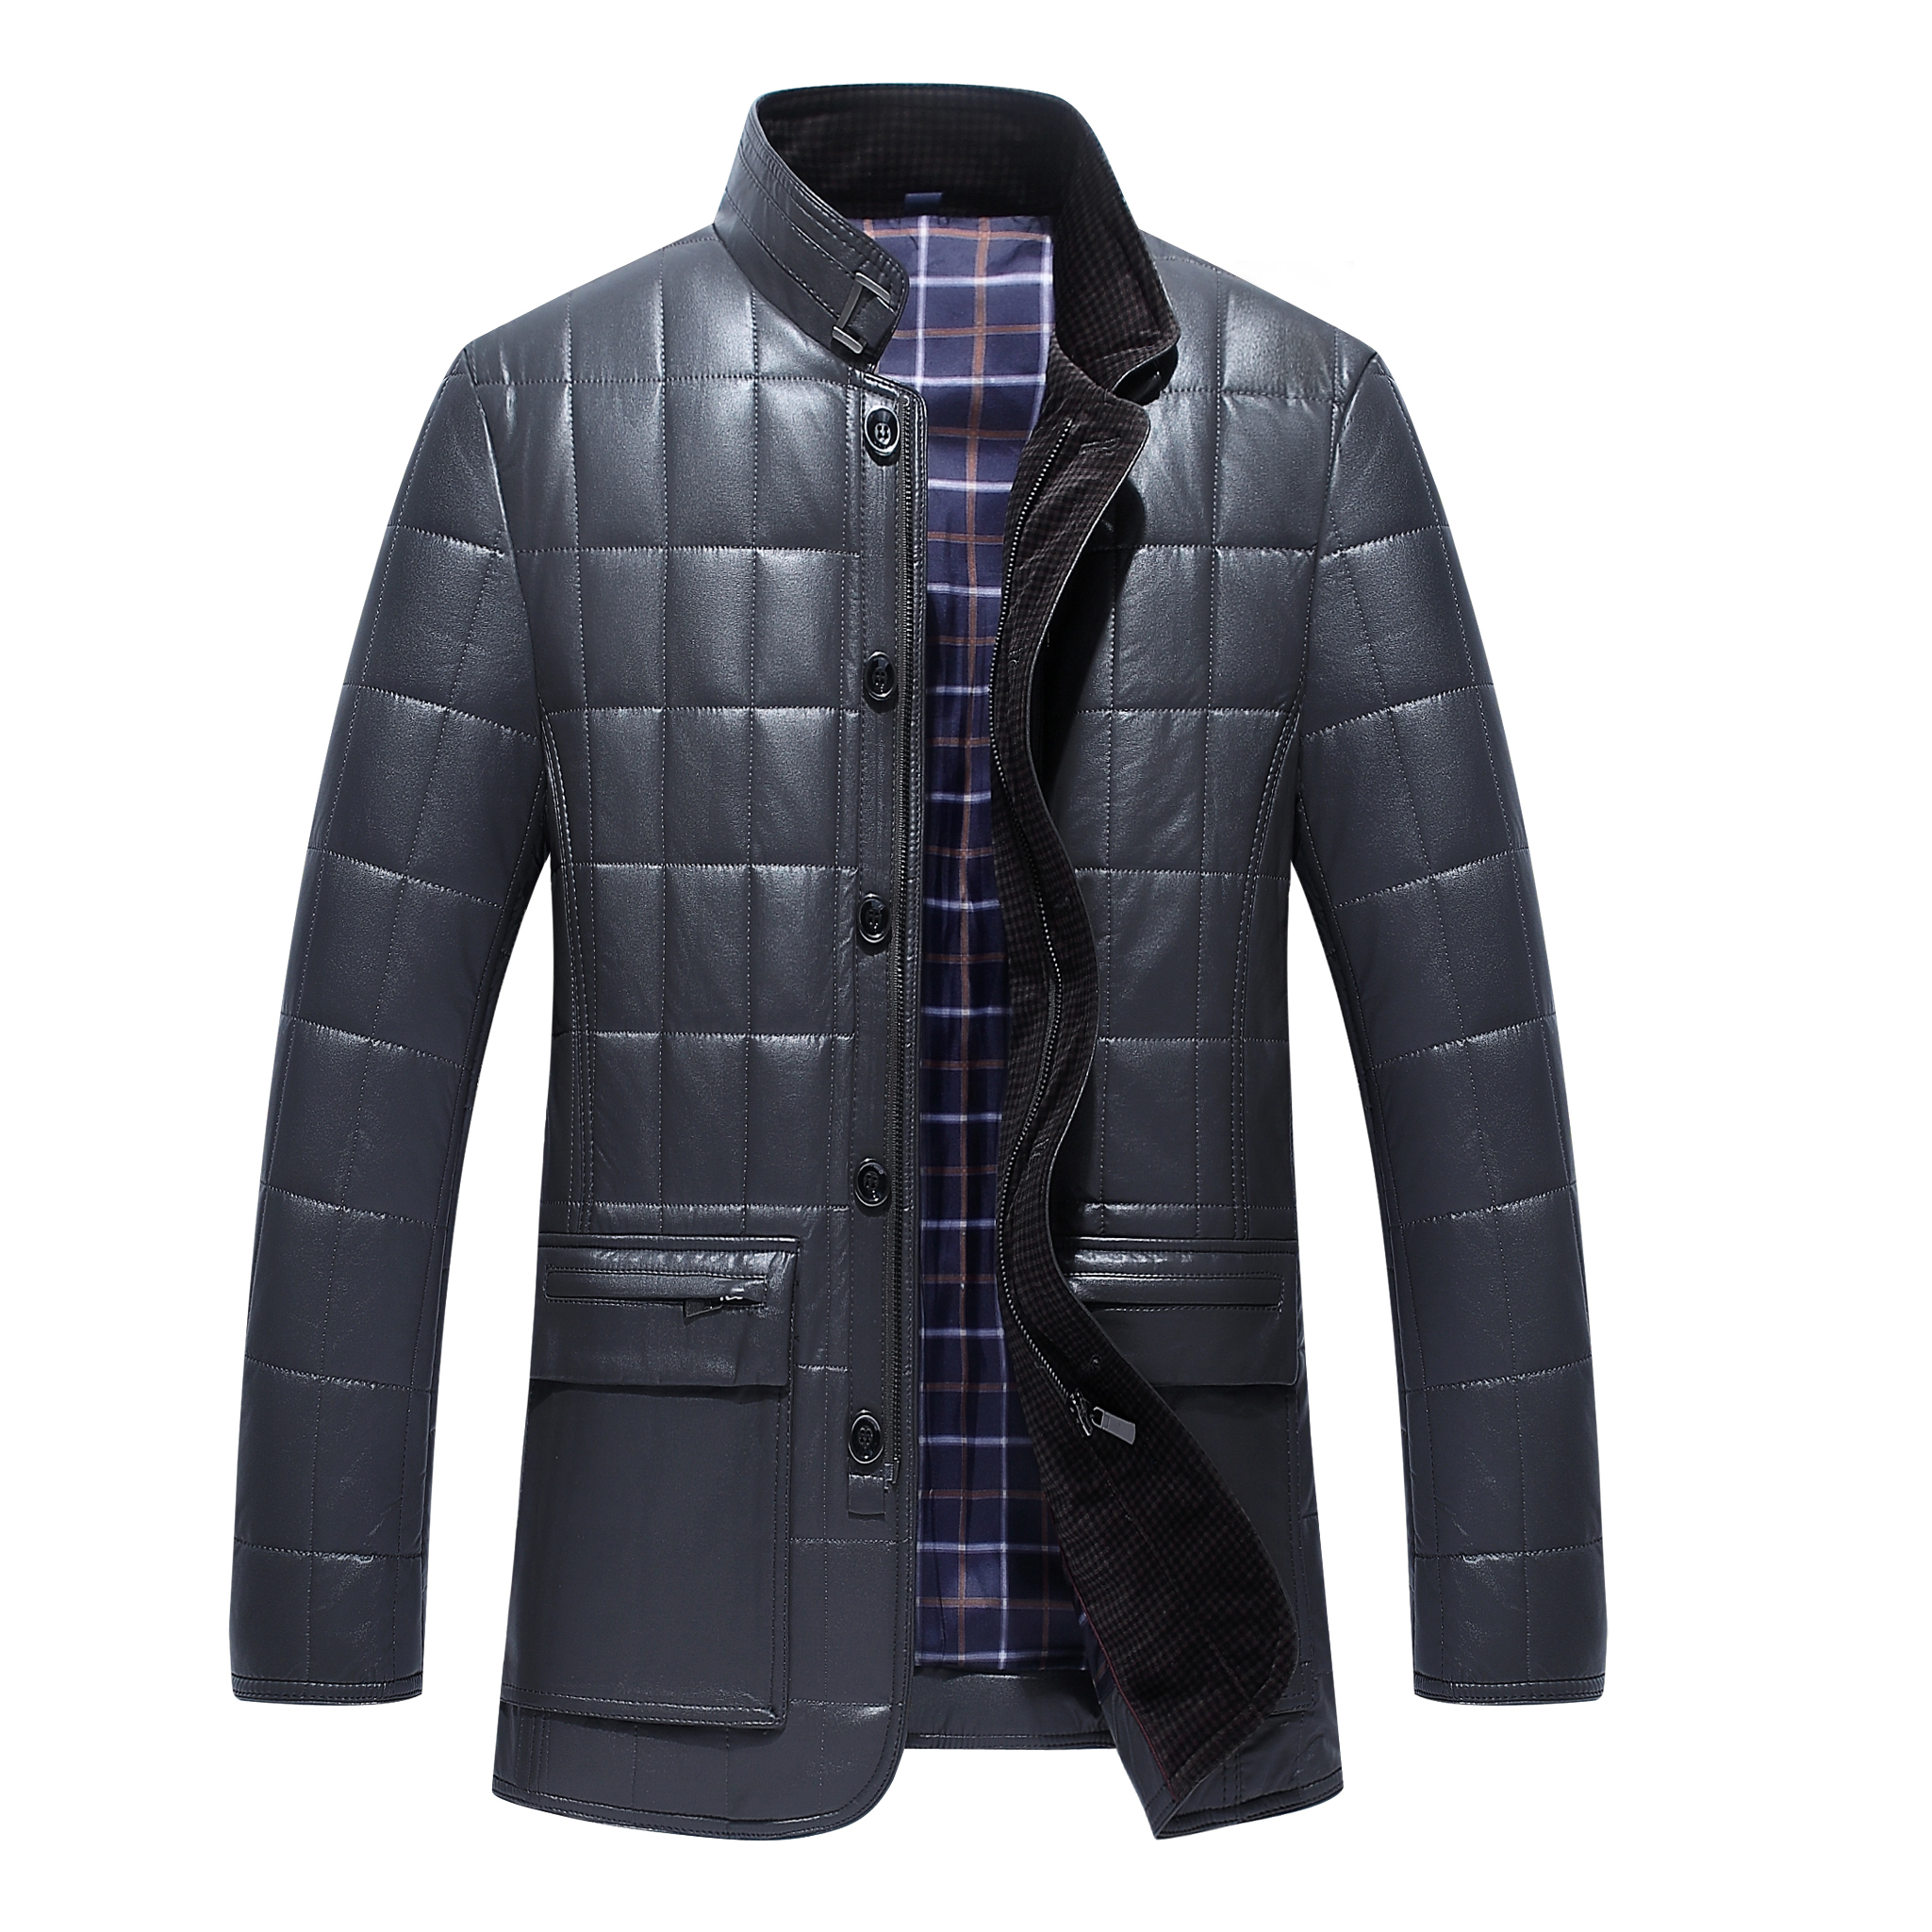 Middle aged winter cotton padded jacket casual stand collar coat business gentleman jacket zipper button pattern